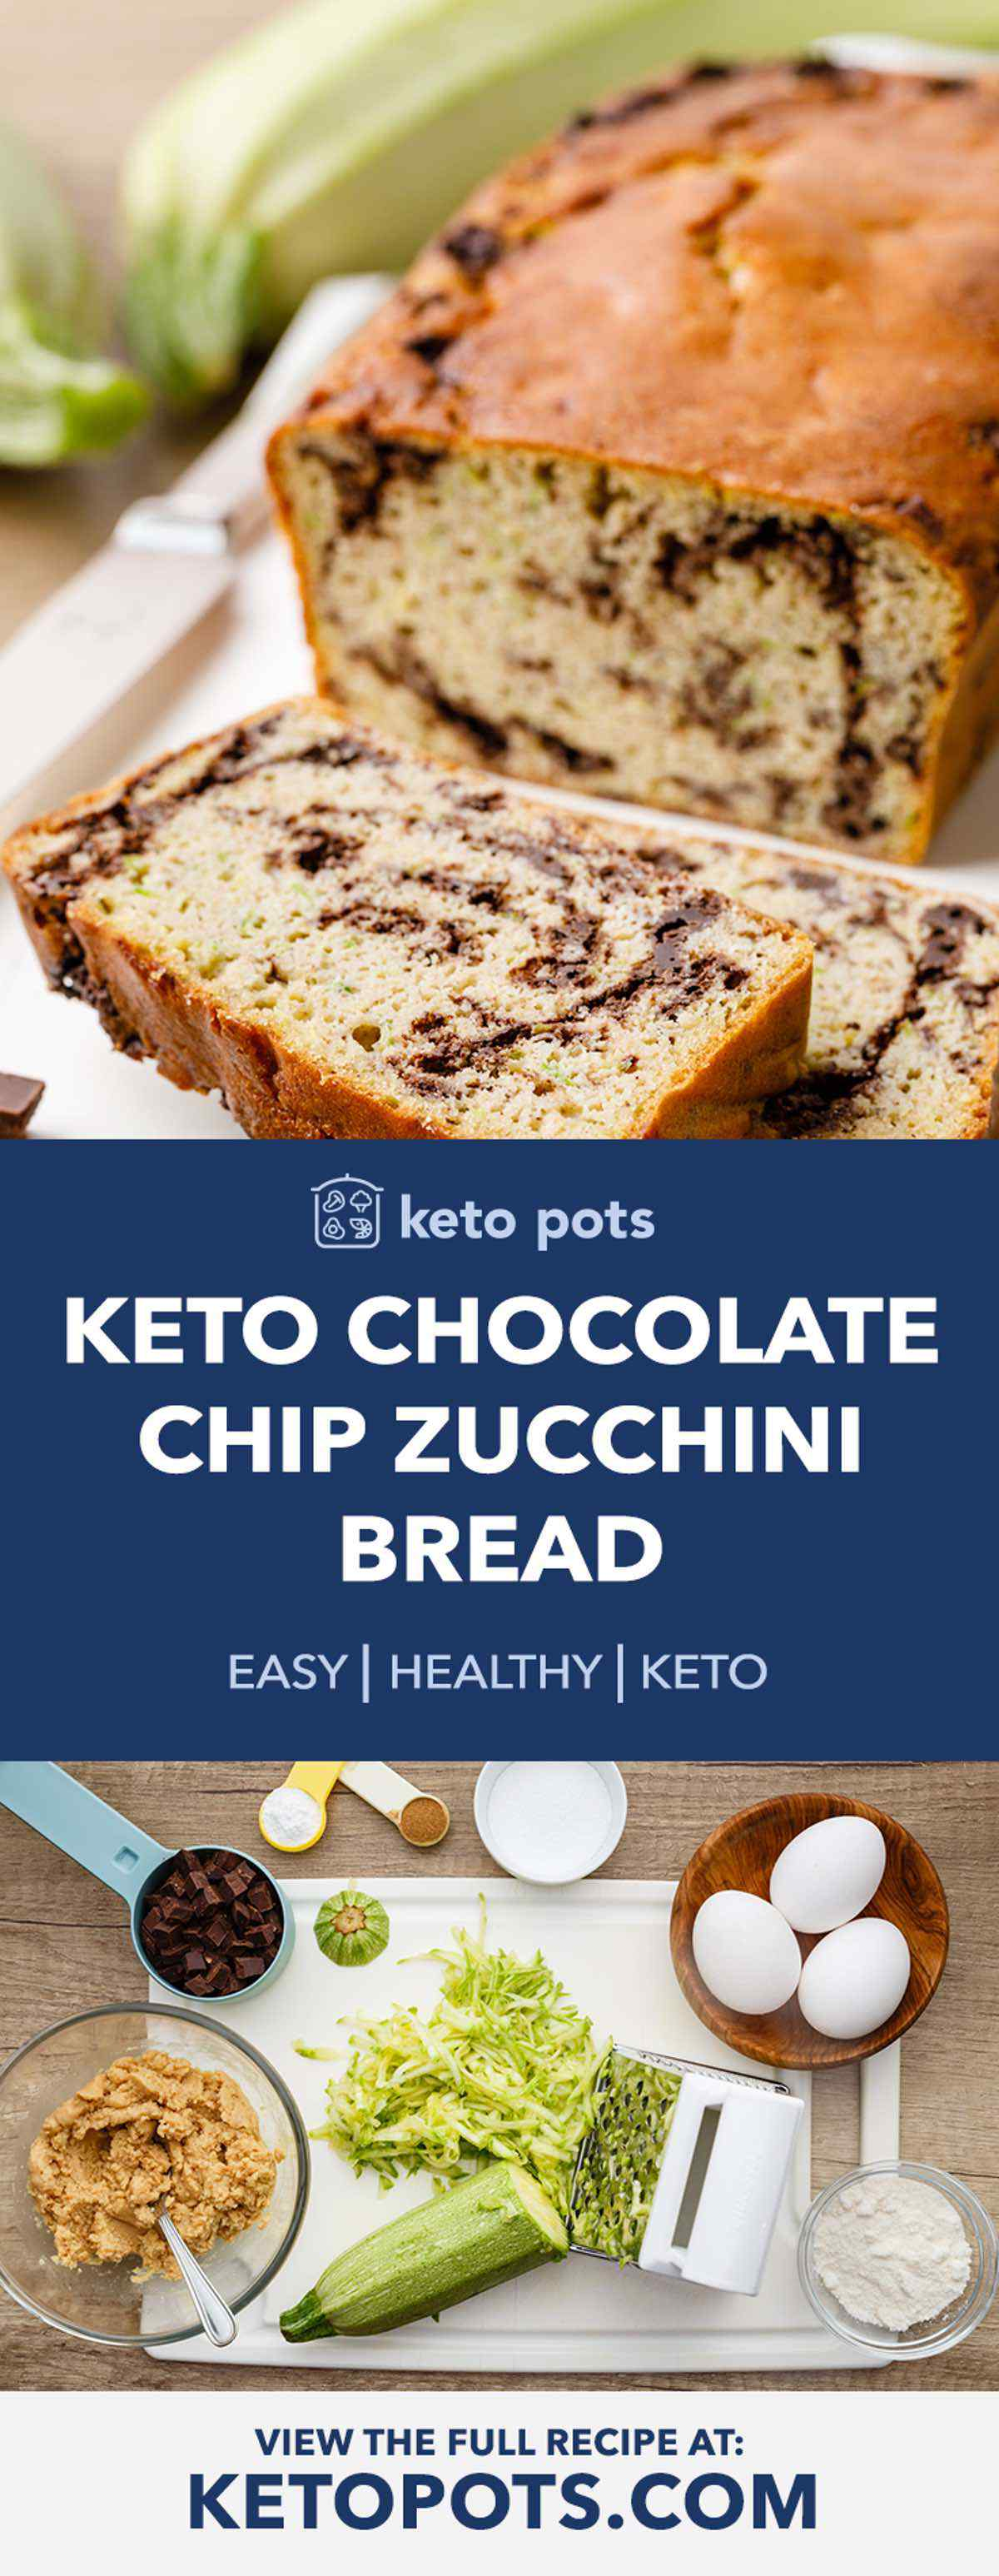 Chocolate Chip Keto Zucchini Bread